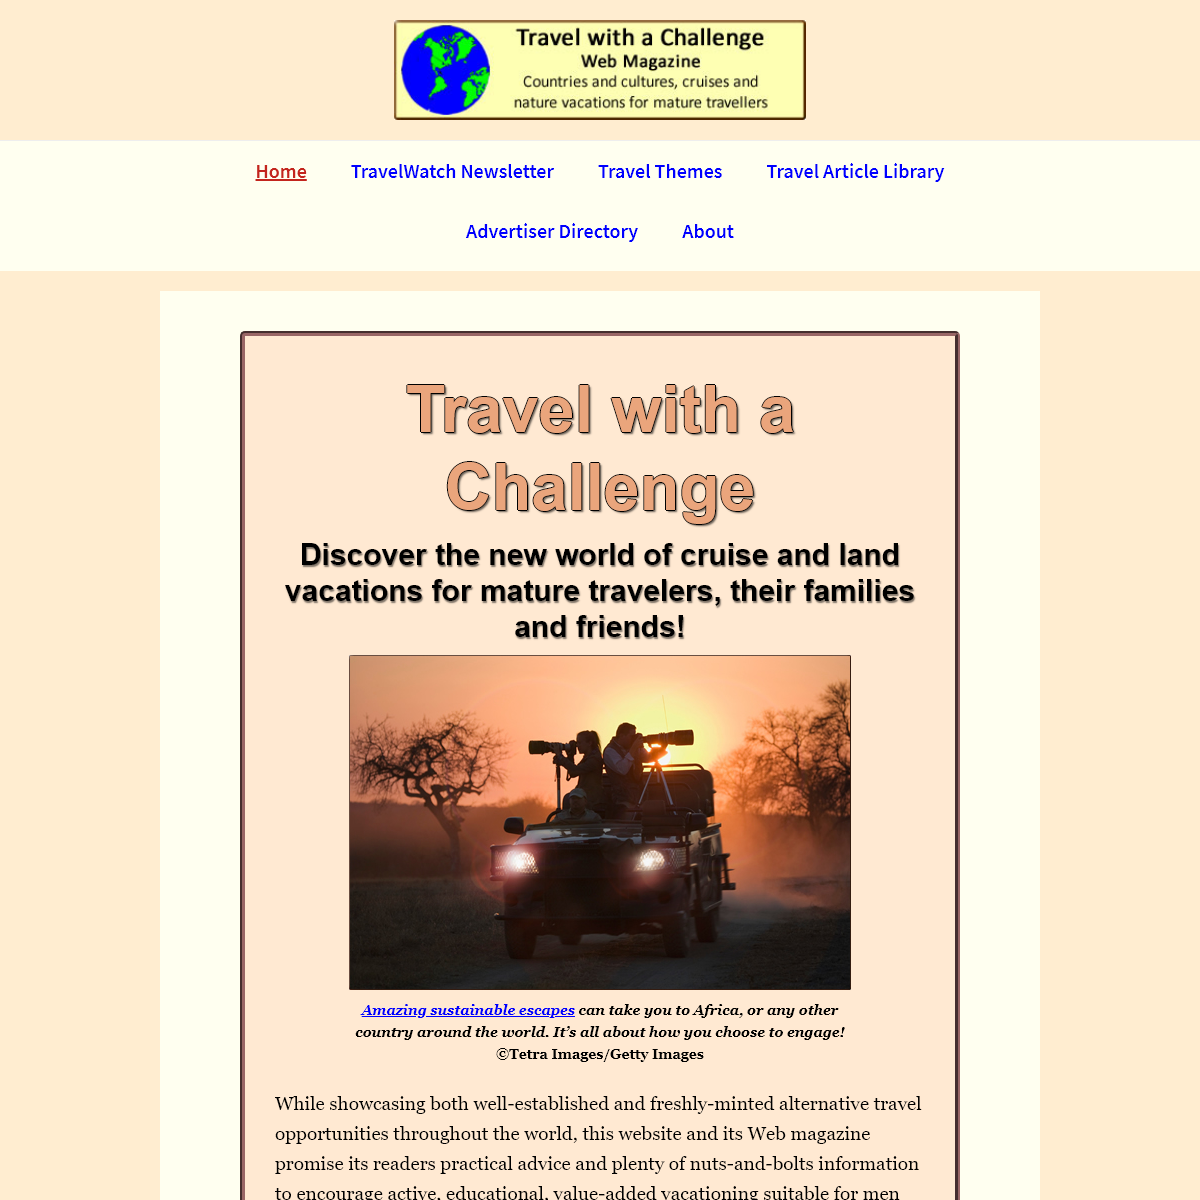 Home - Travel with a Challenge